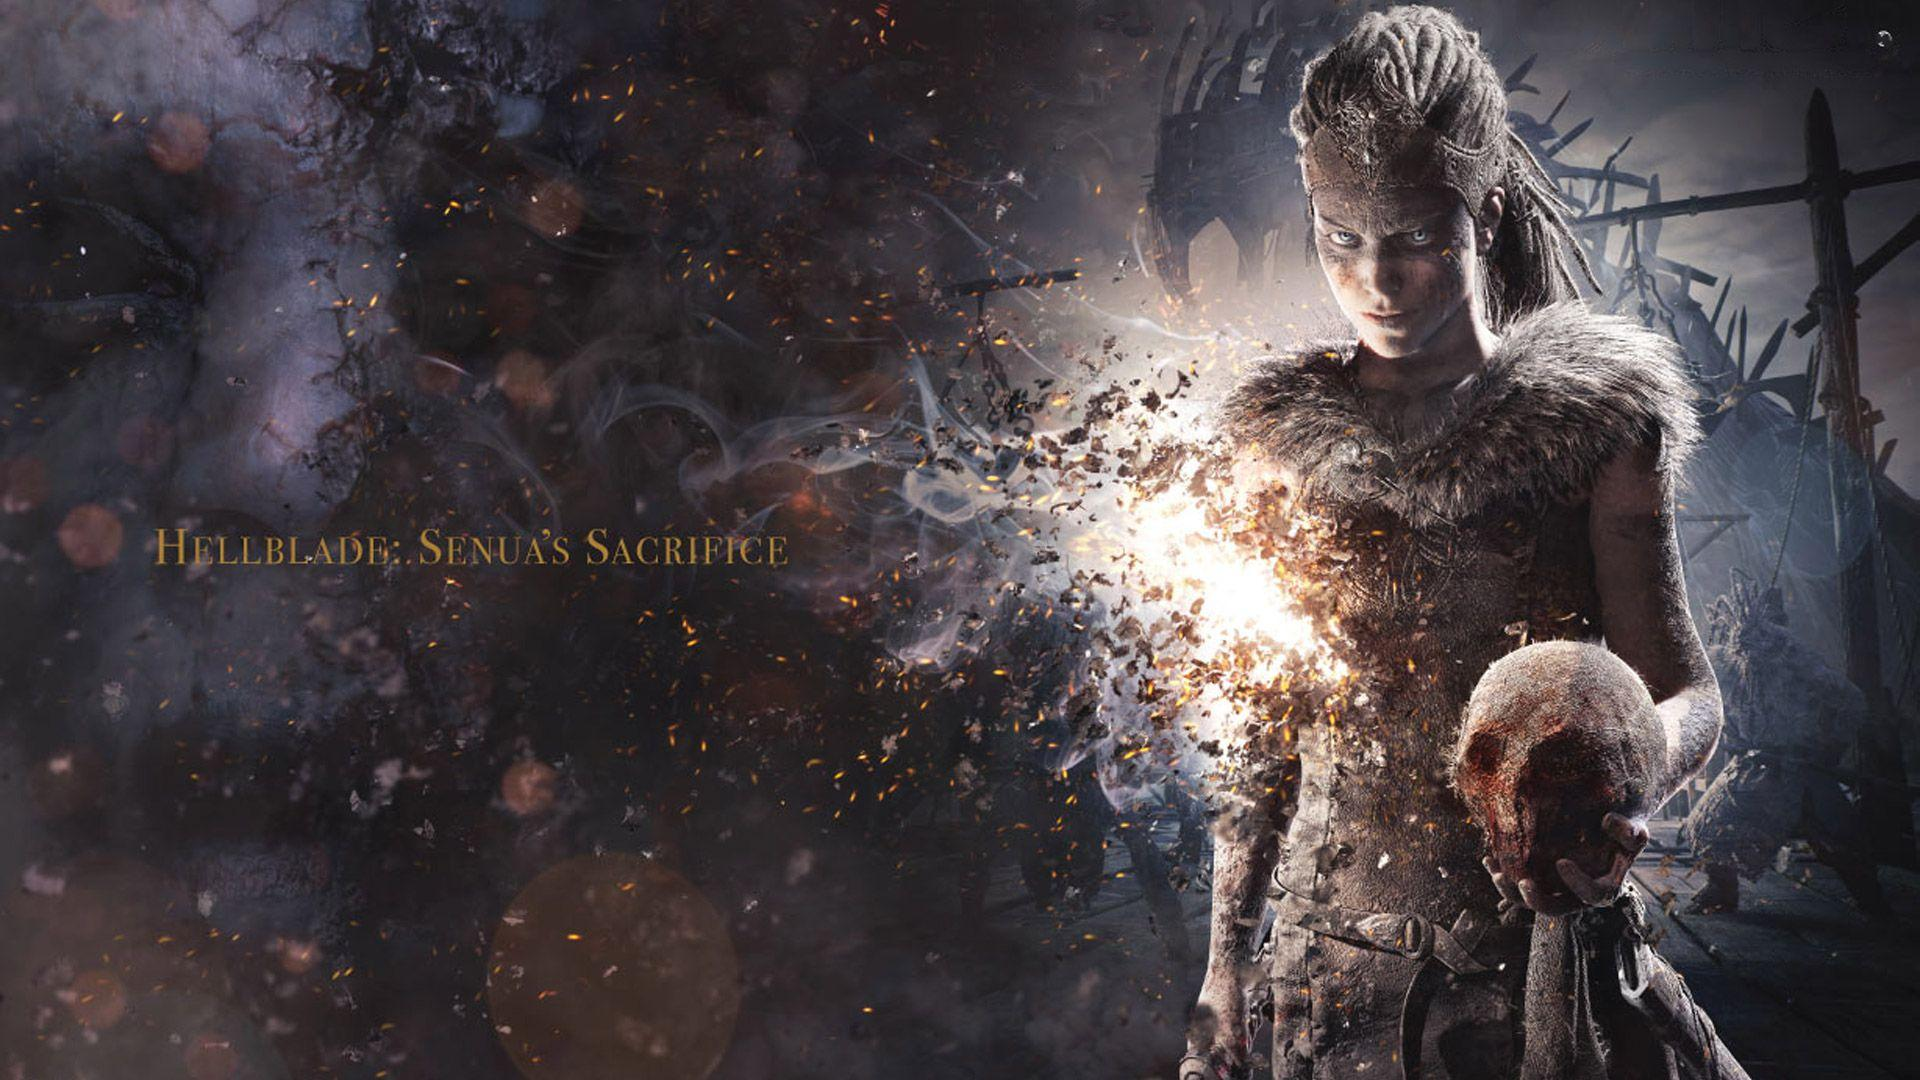 Hellblade: Senua's Sacrifice HD Wallpapers and Backgrounds Image